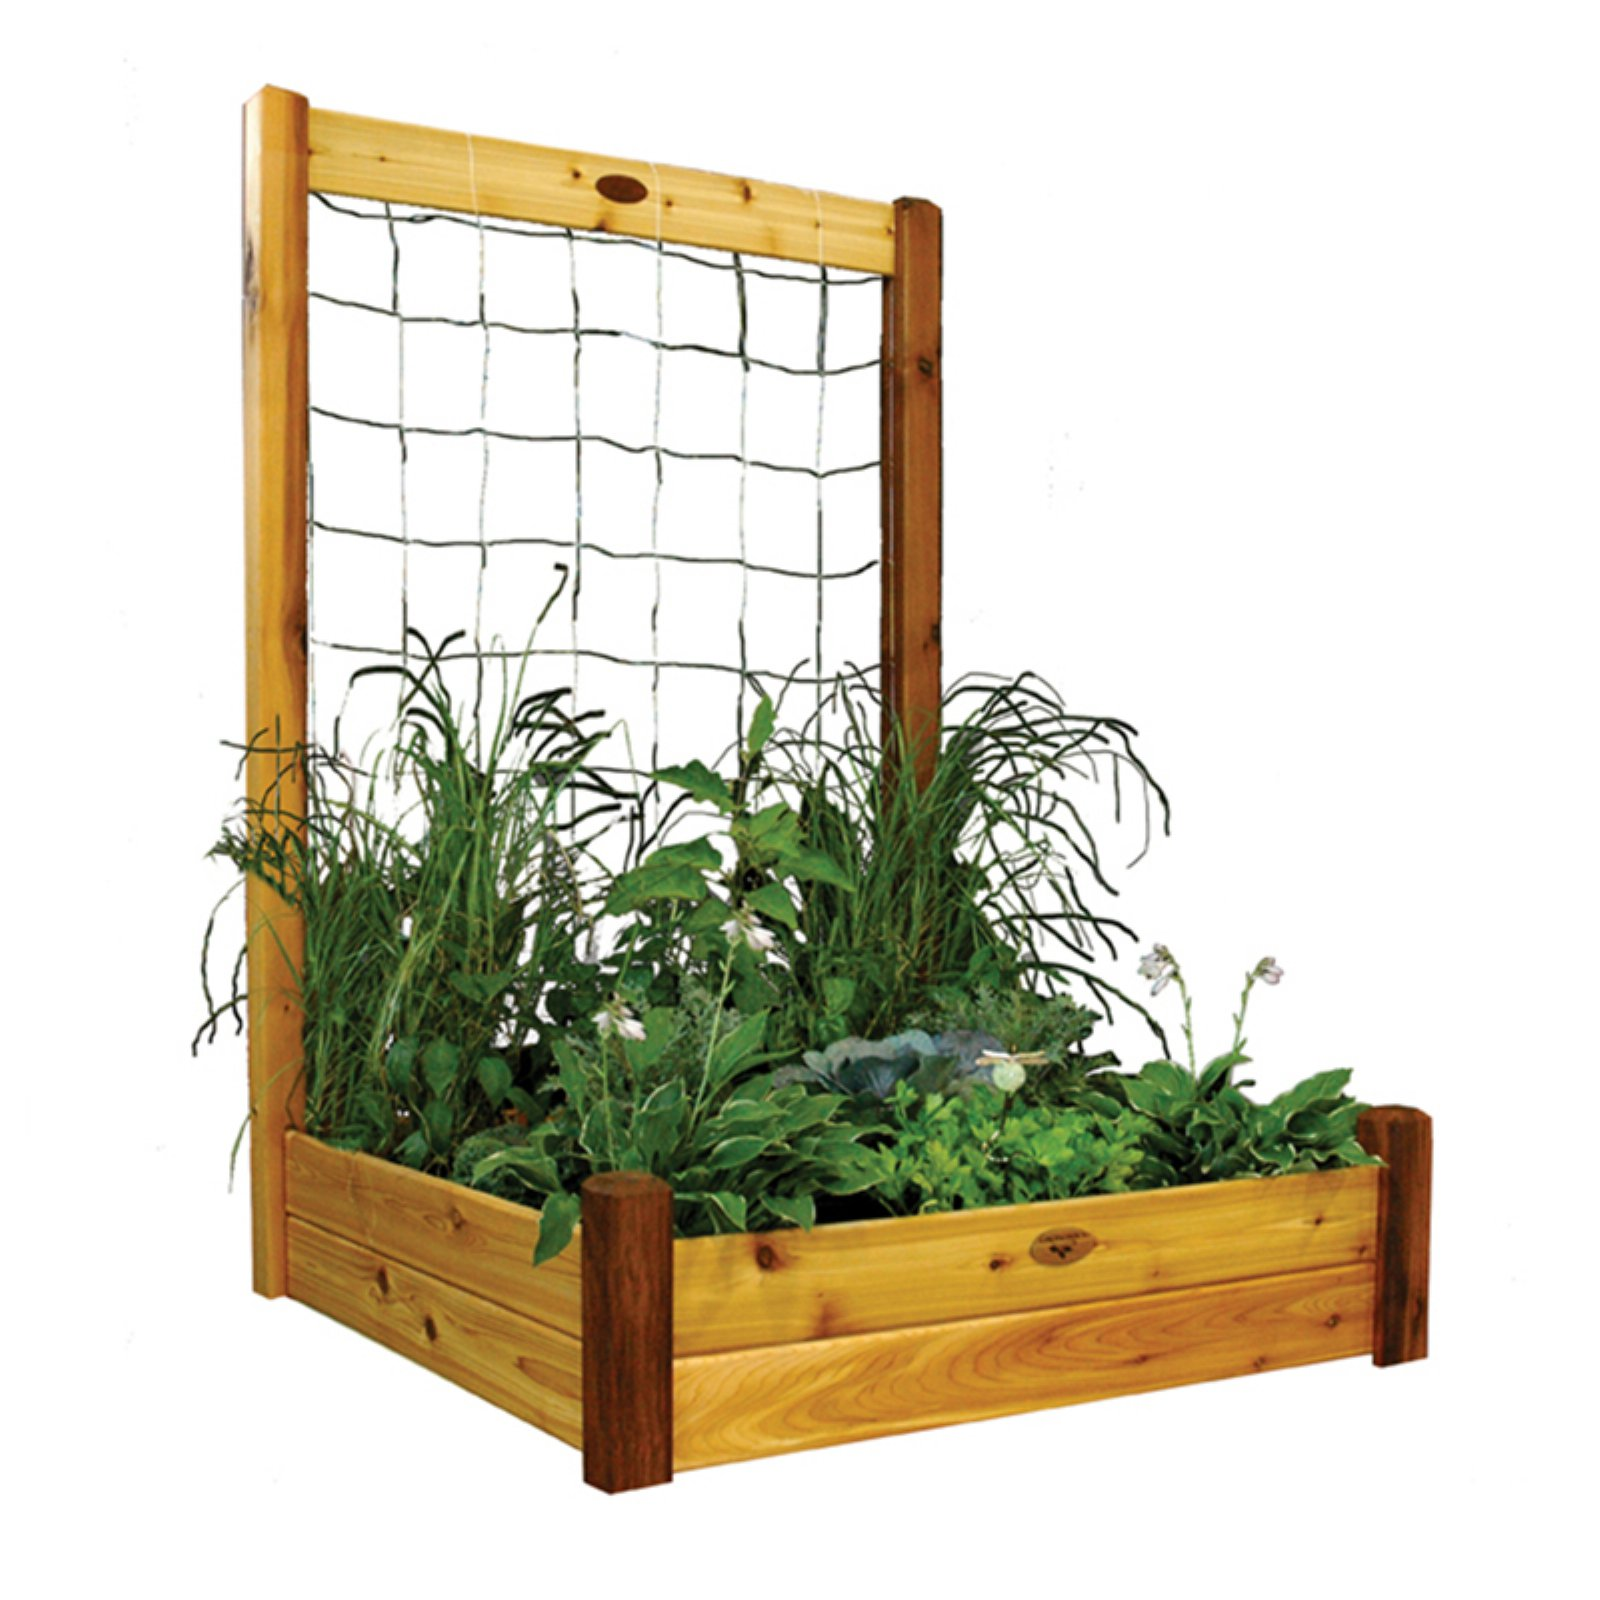 Gronomics 48L x 48W x 13H in. Raised Garden Bed with Trellis Kit